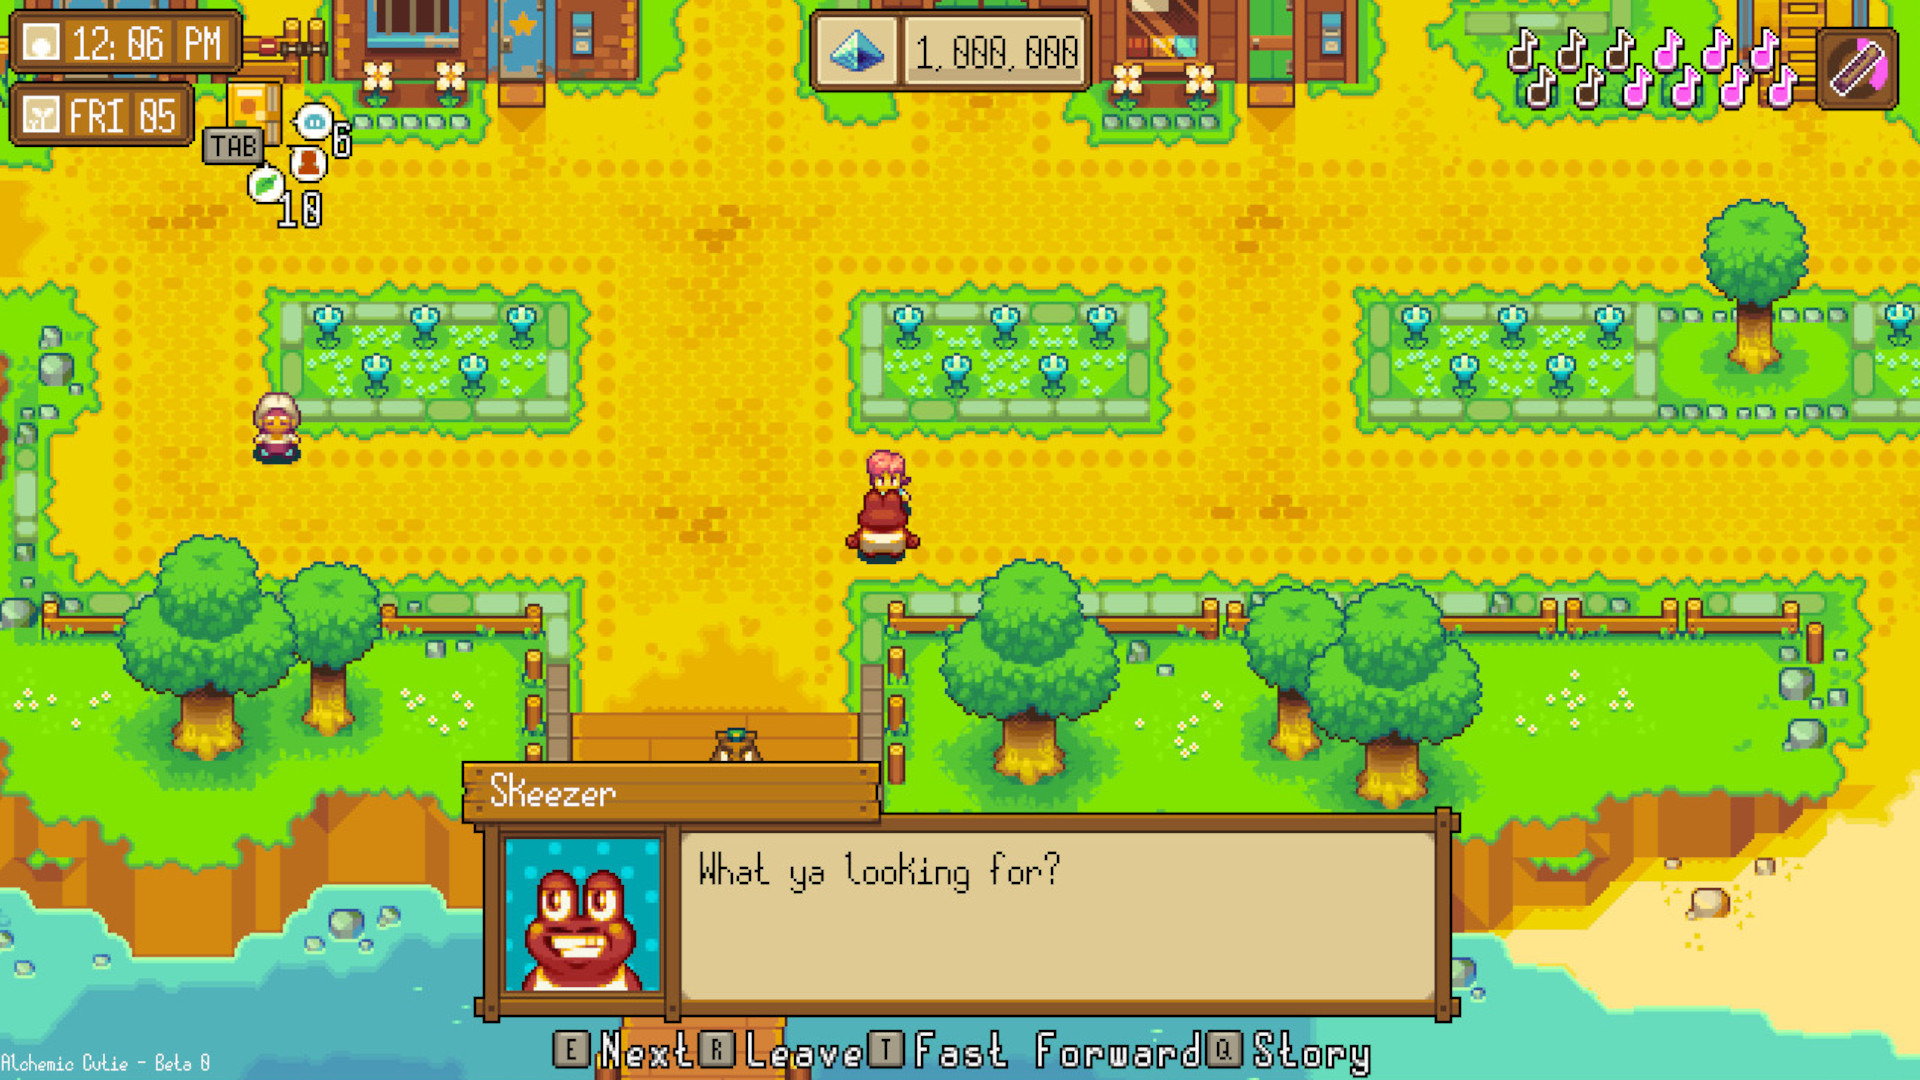 Stardew Valley-like magical farming RPG Alchemic Cutie launches this July